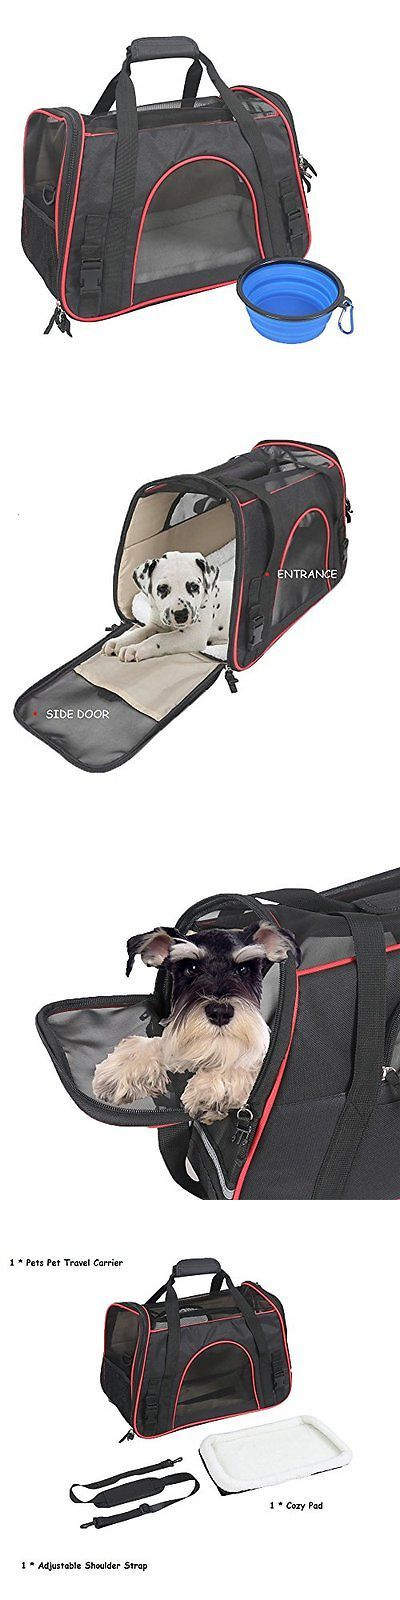 Carriers and Totes 177788: Ewolee Pet Carrier Soft-Sided Airline Approved Dog Travel For Small Dogs And -> BUY IT NOW ONLY: $46.16 on eBay!